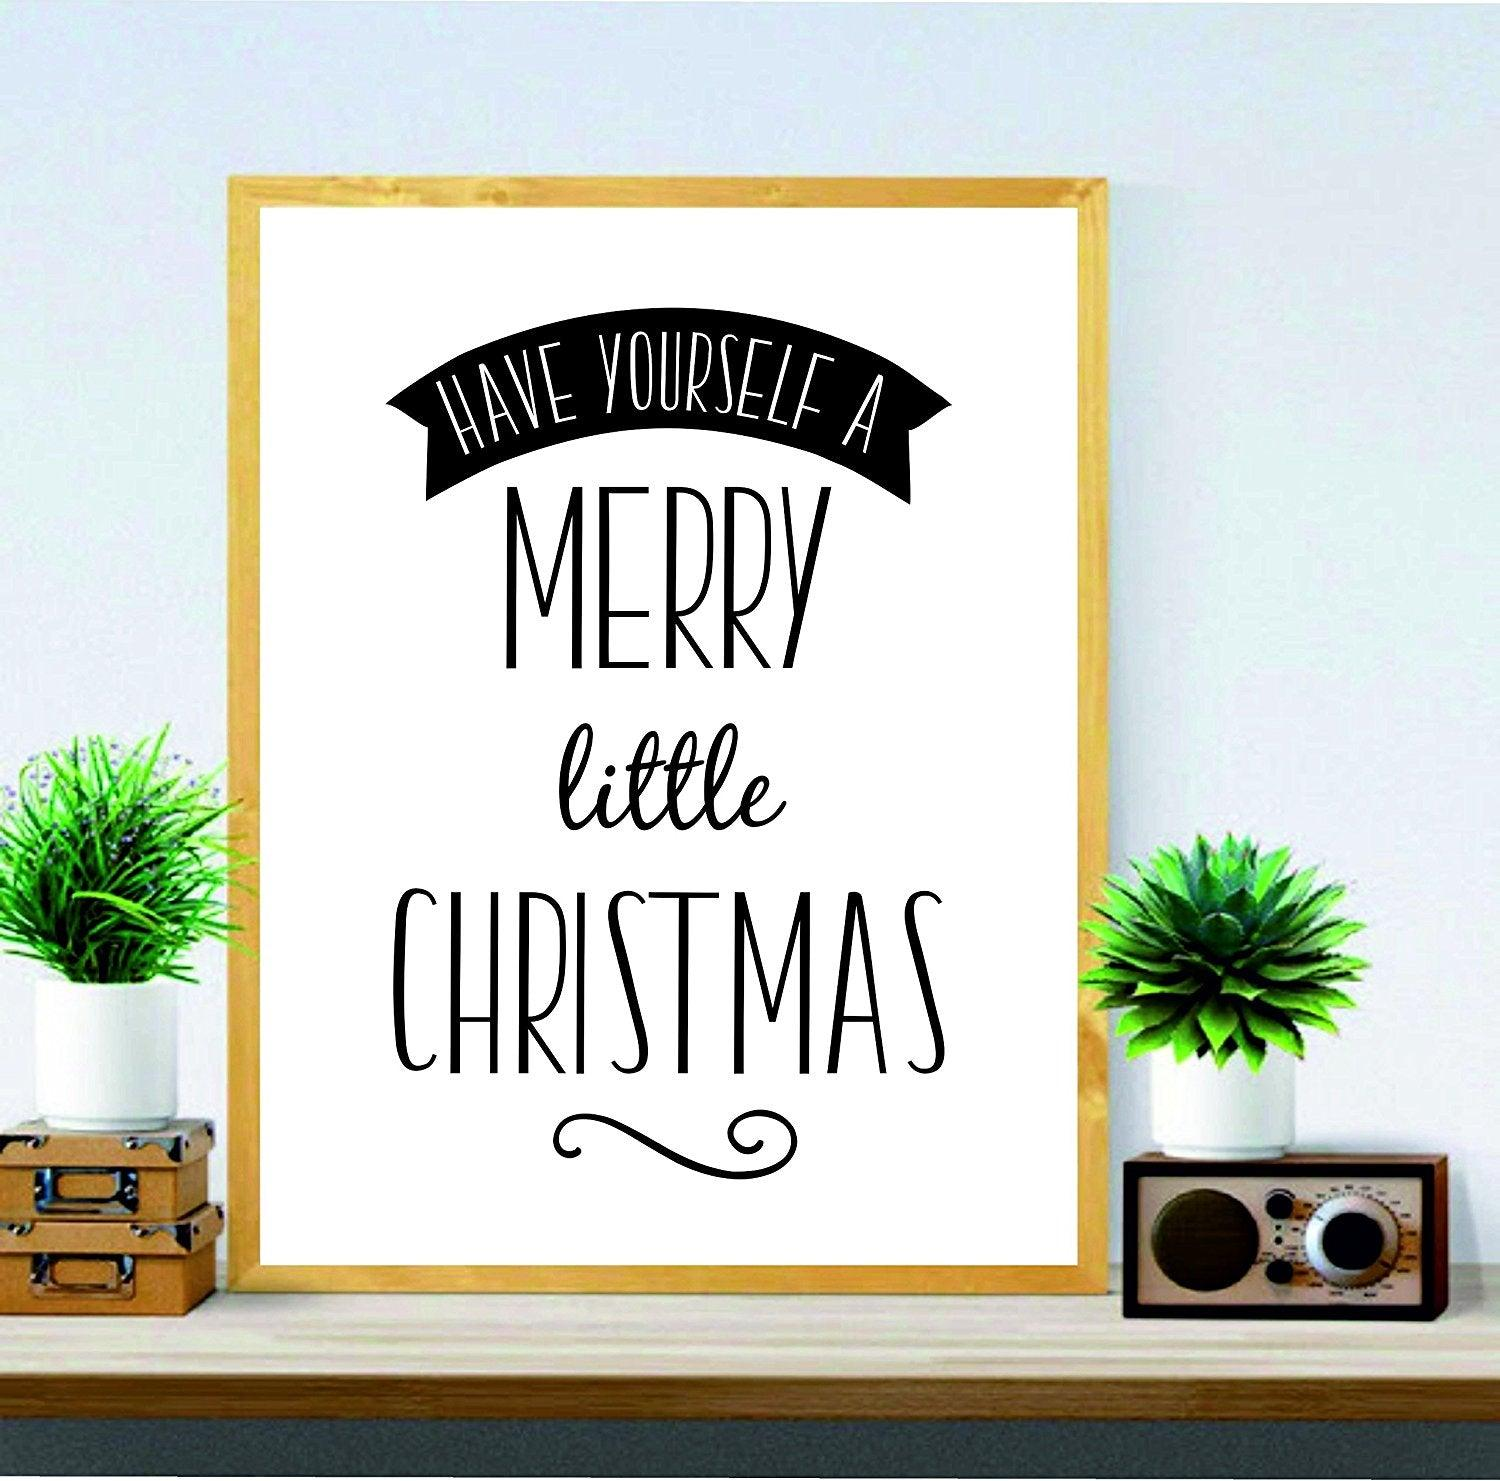 Christmas Print - Christmas wall art - Have Yourself A Merry Little ...